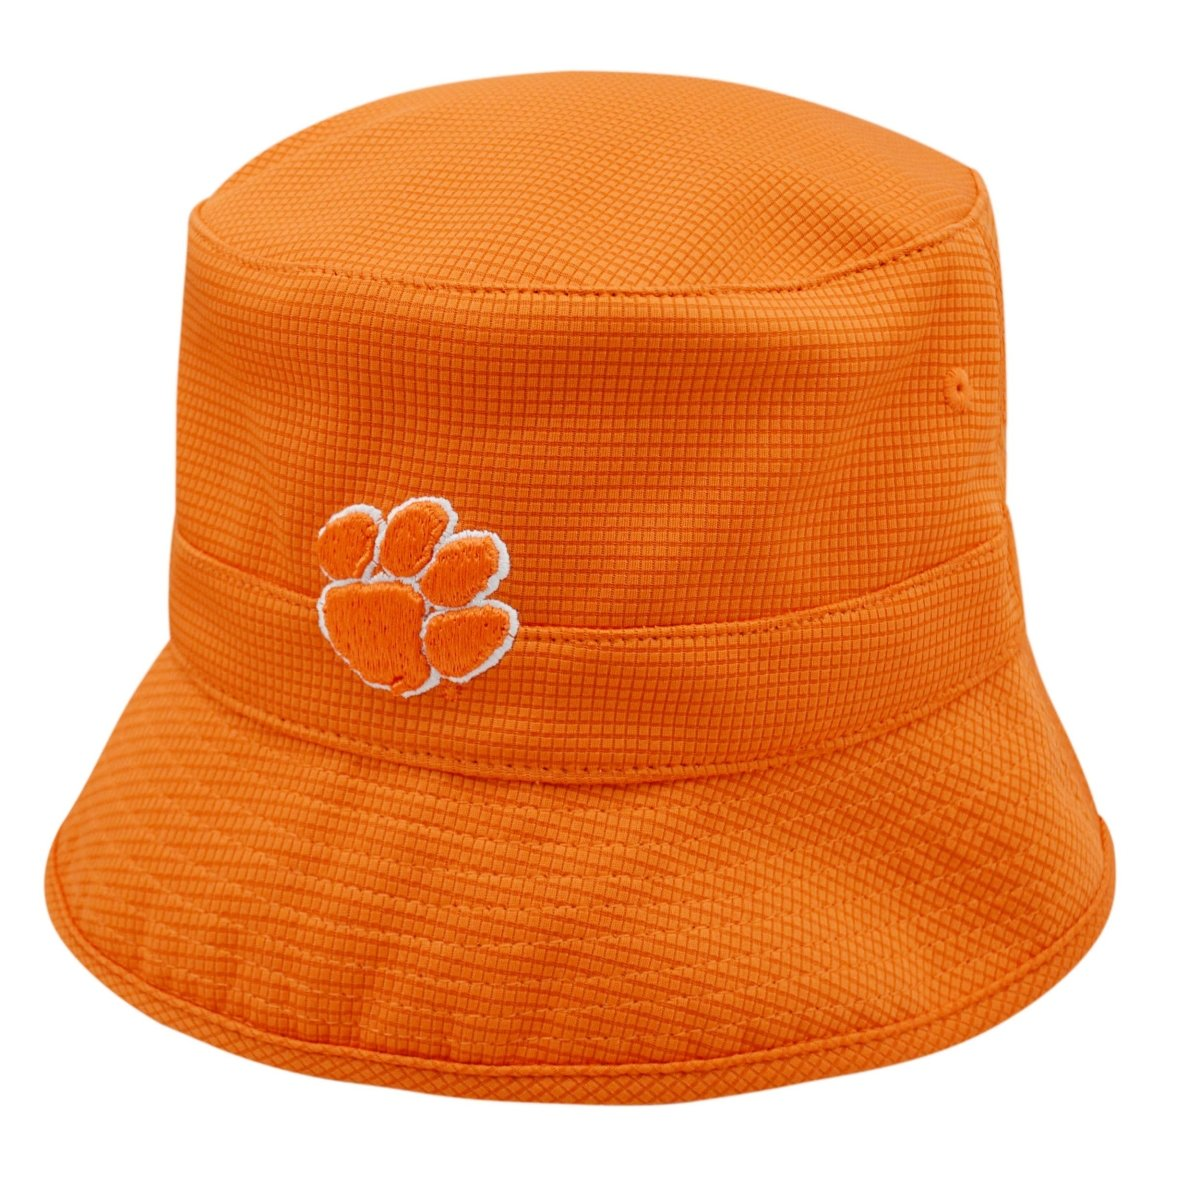 Top of the World Clemson Tigers Poly Mesh Bucket Hat - Mr. Knickerbocker